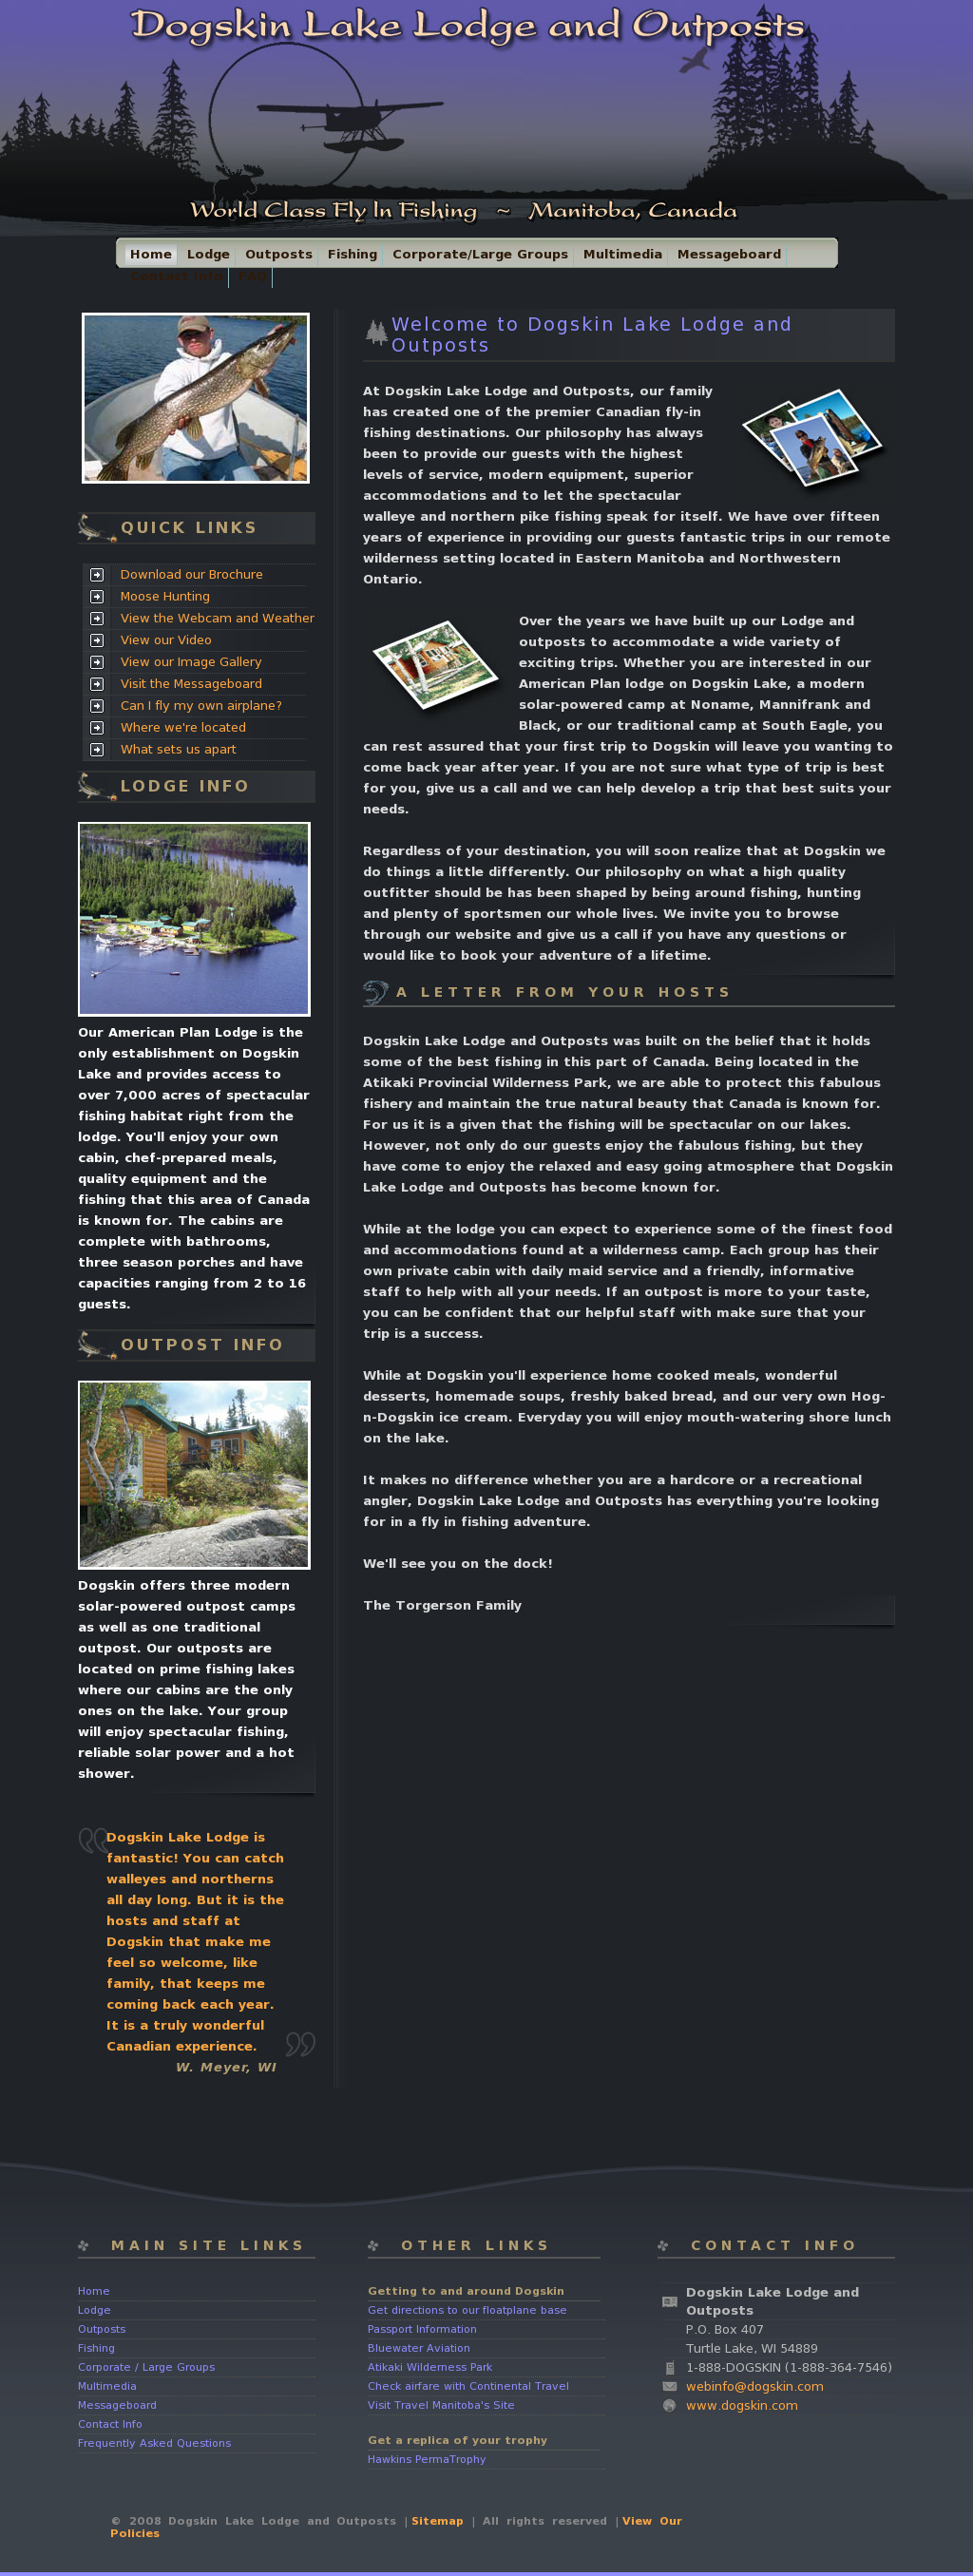 Dogskin Lake Lodge And Outpost Competitors, Revenue and